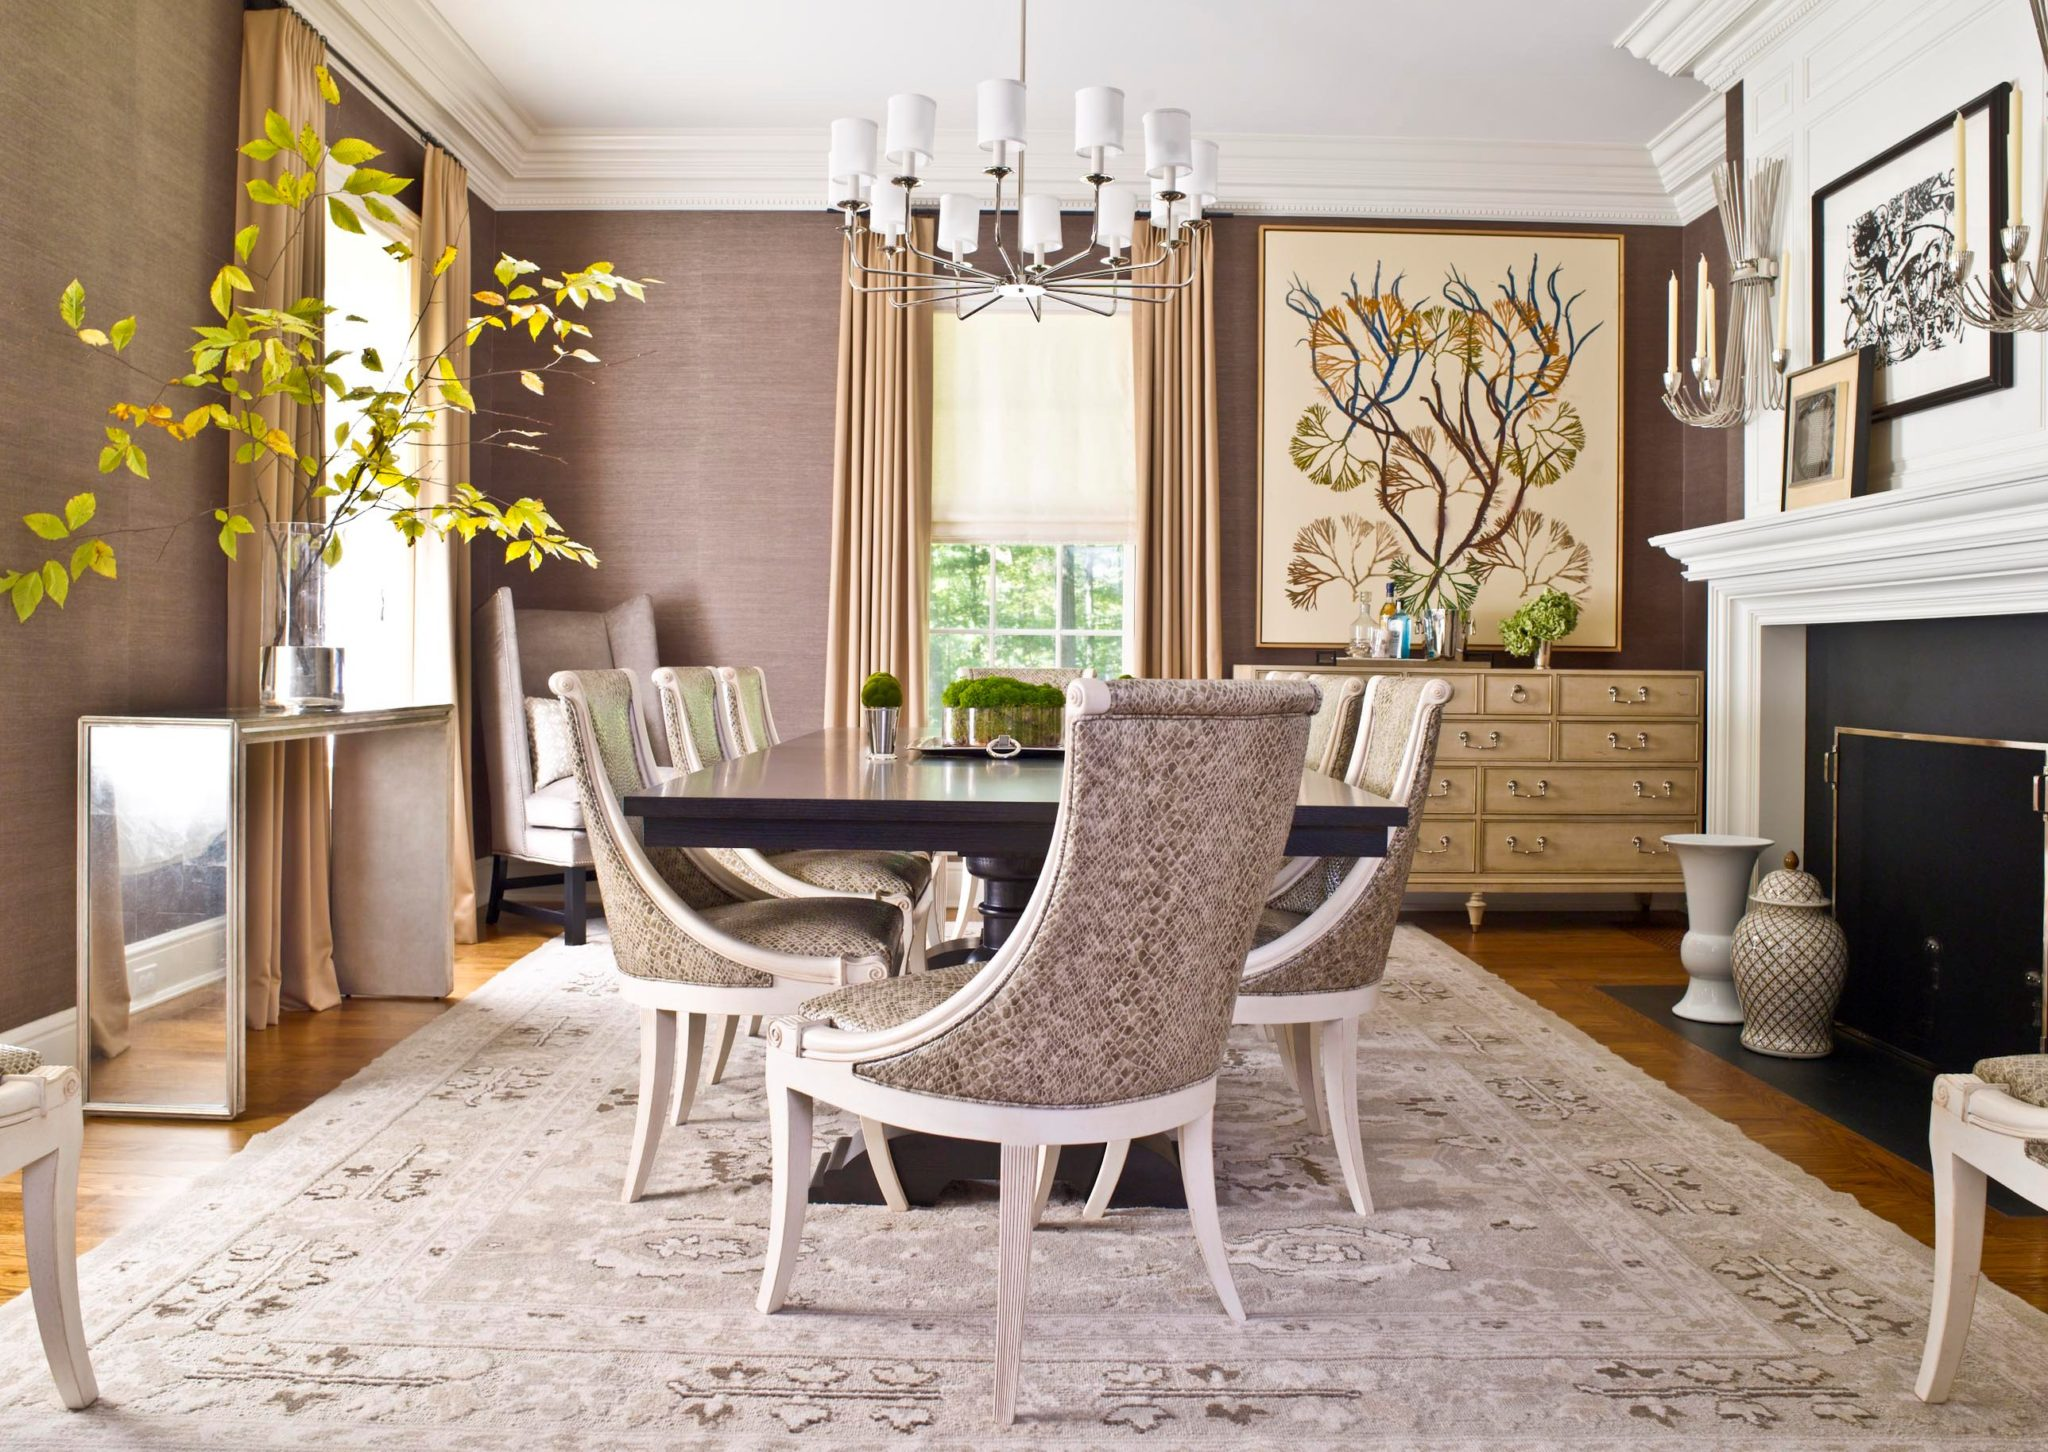 Brown and cream dining room with faux snakeskin chairs by S.B. Long Interiors